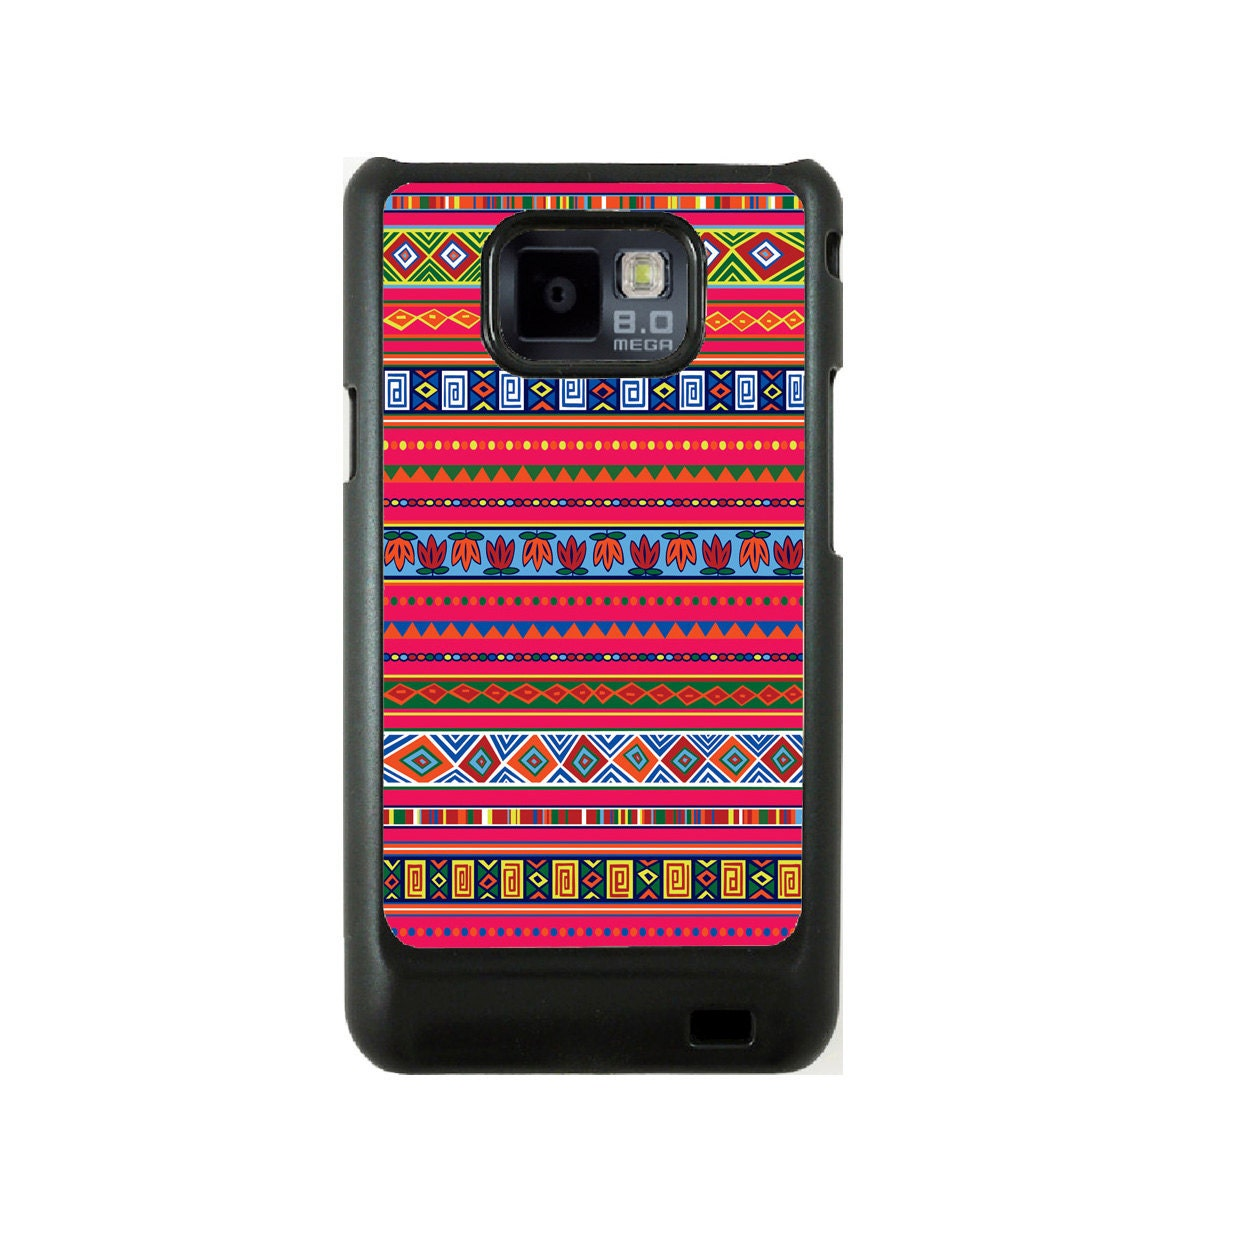 Aztec Samsung Galaxy S2 case, i9100 cover, Samsung Galaxy SII cover ...